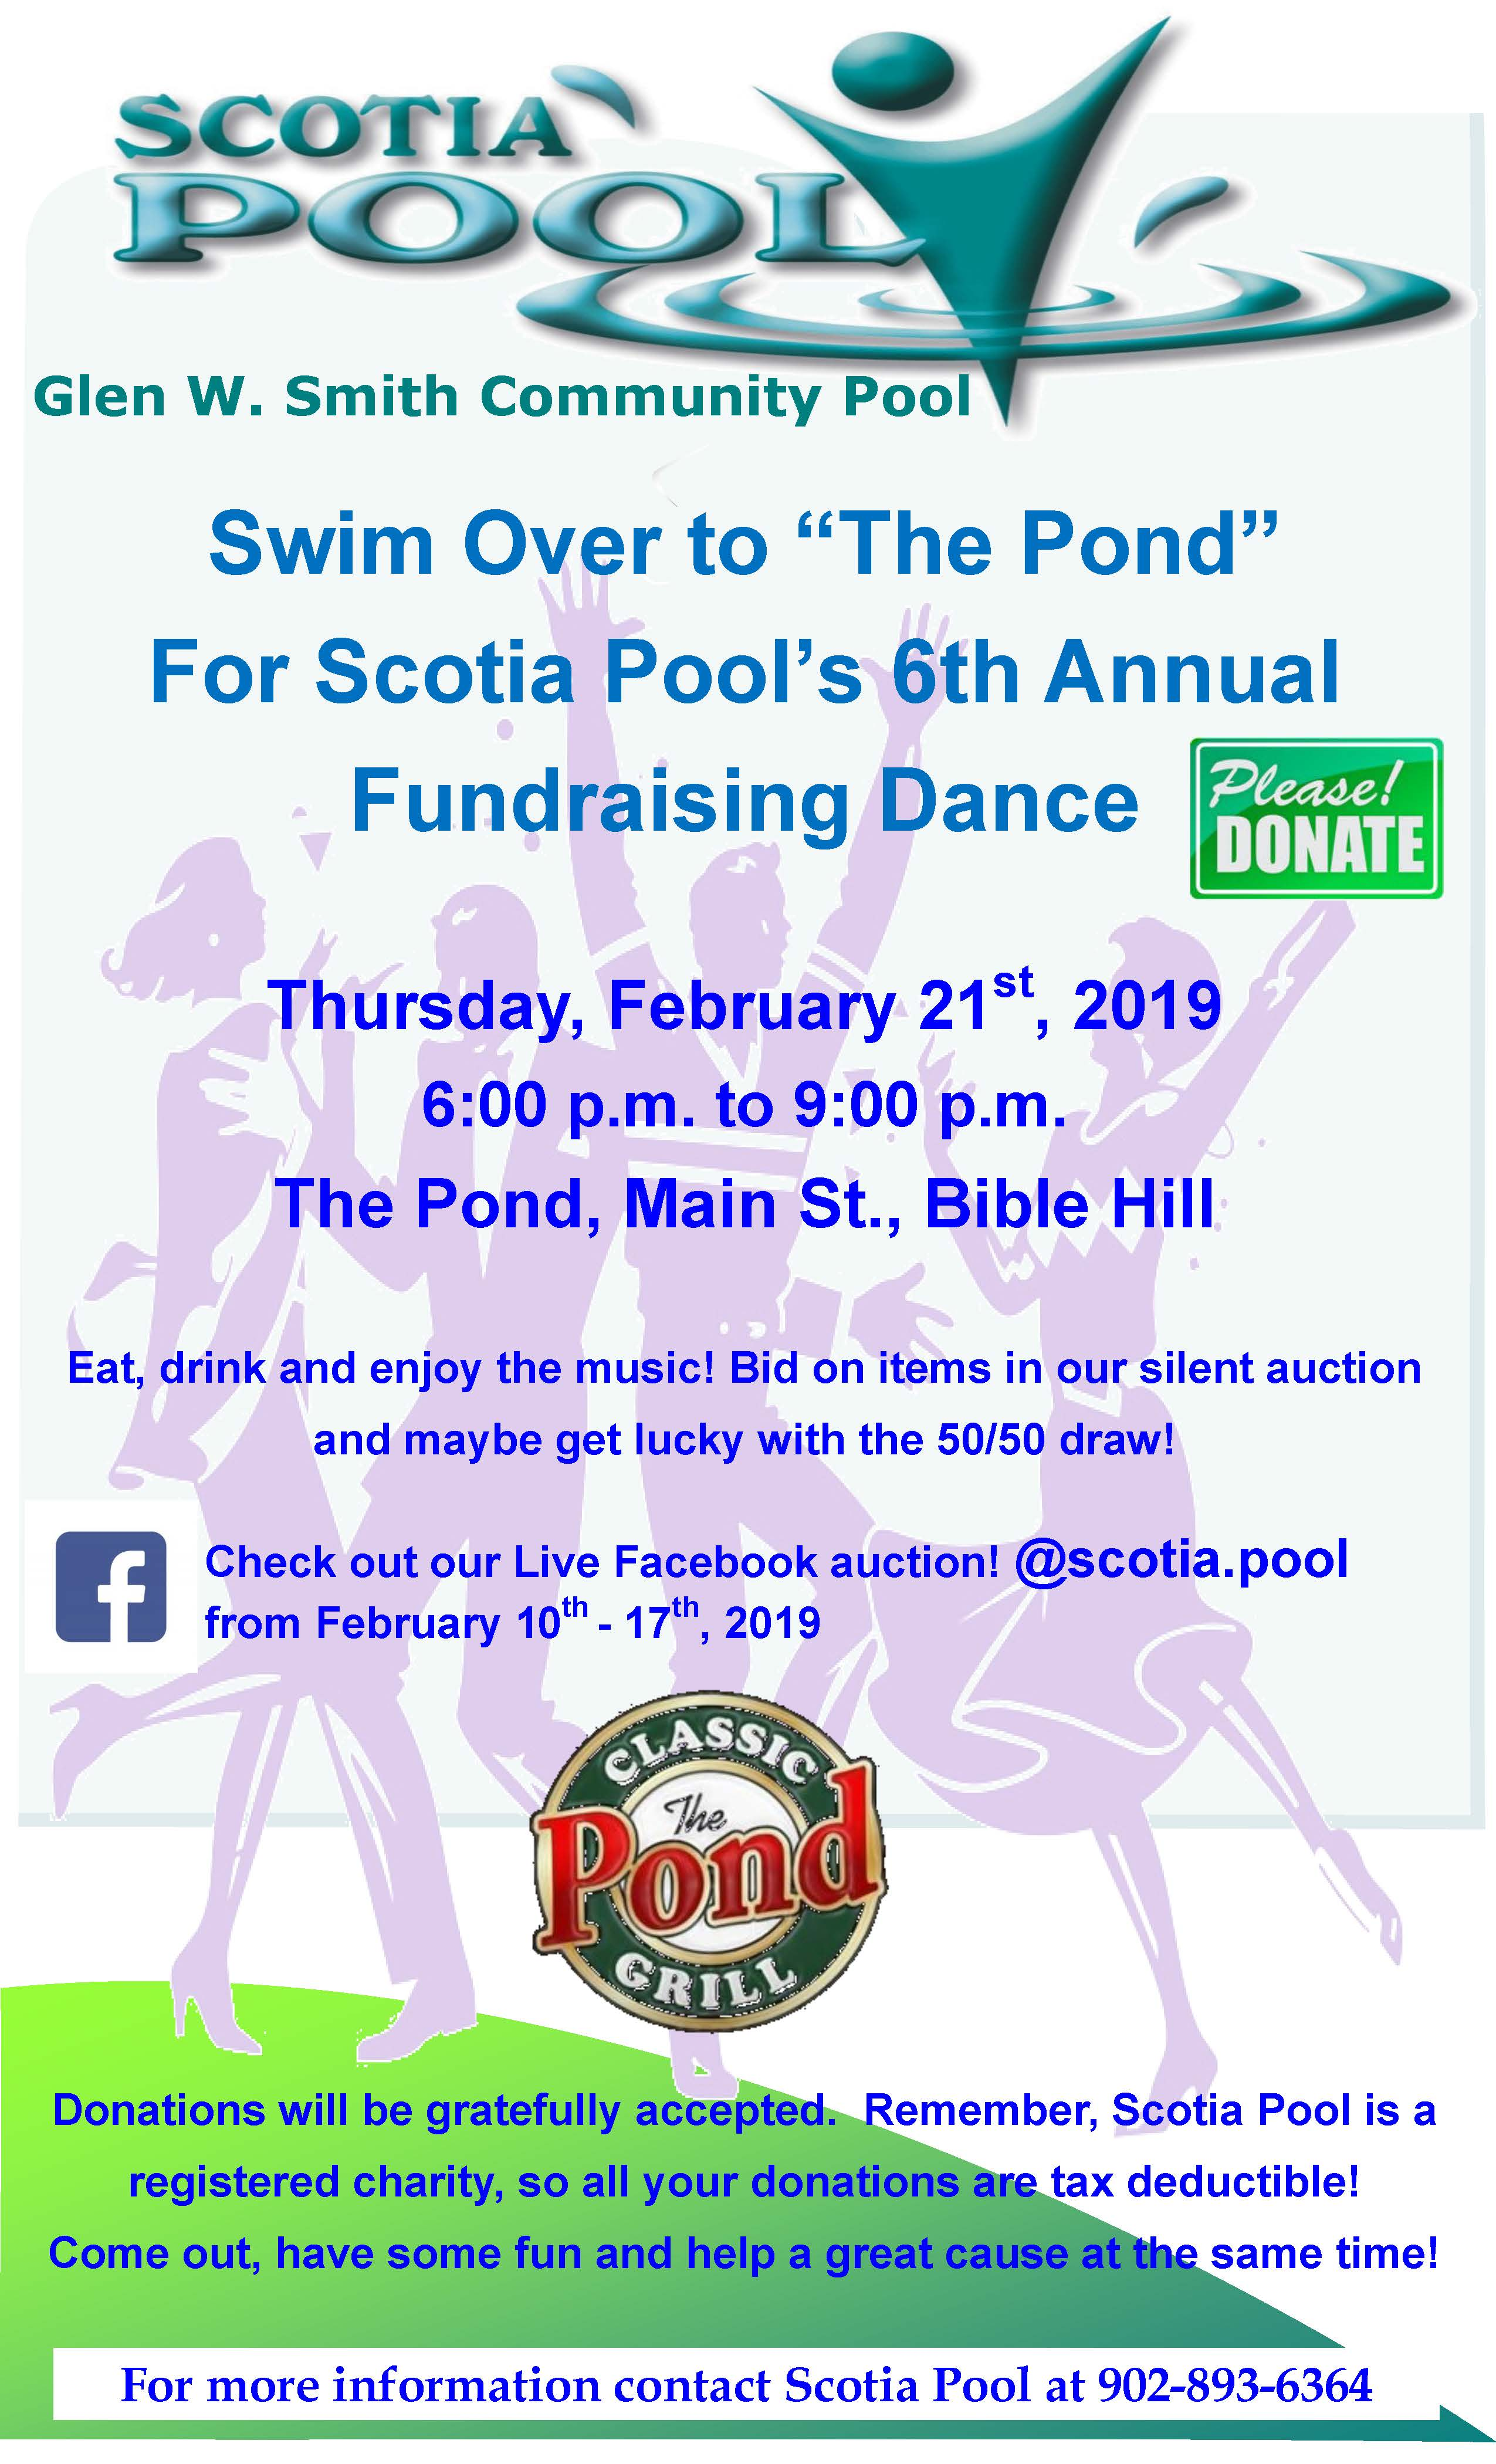 Scotia Pool Fundraising Poster 2019